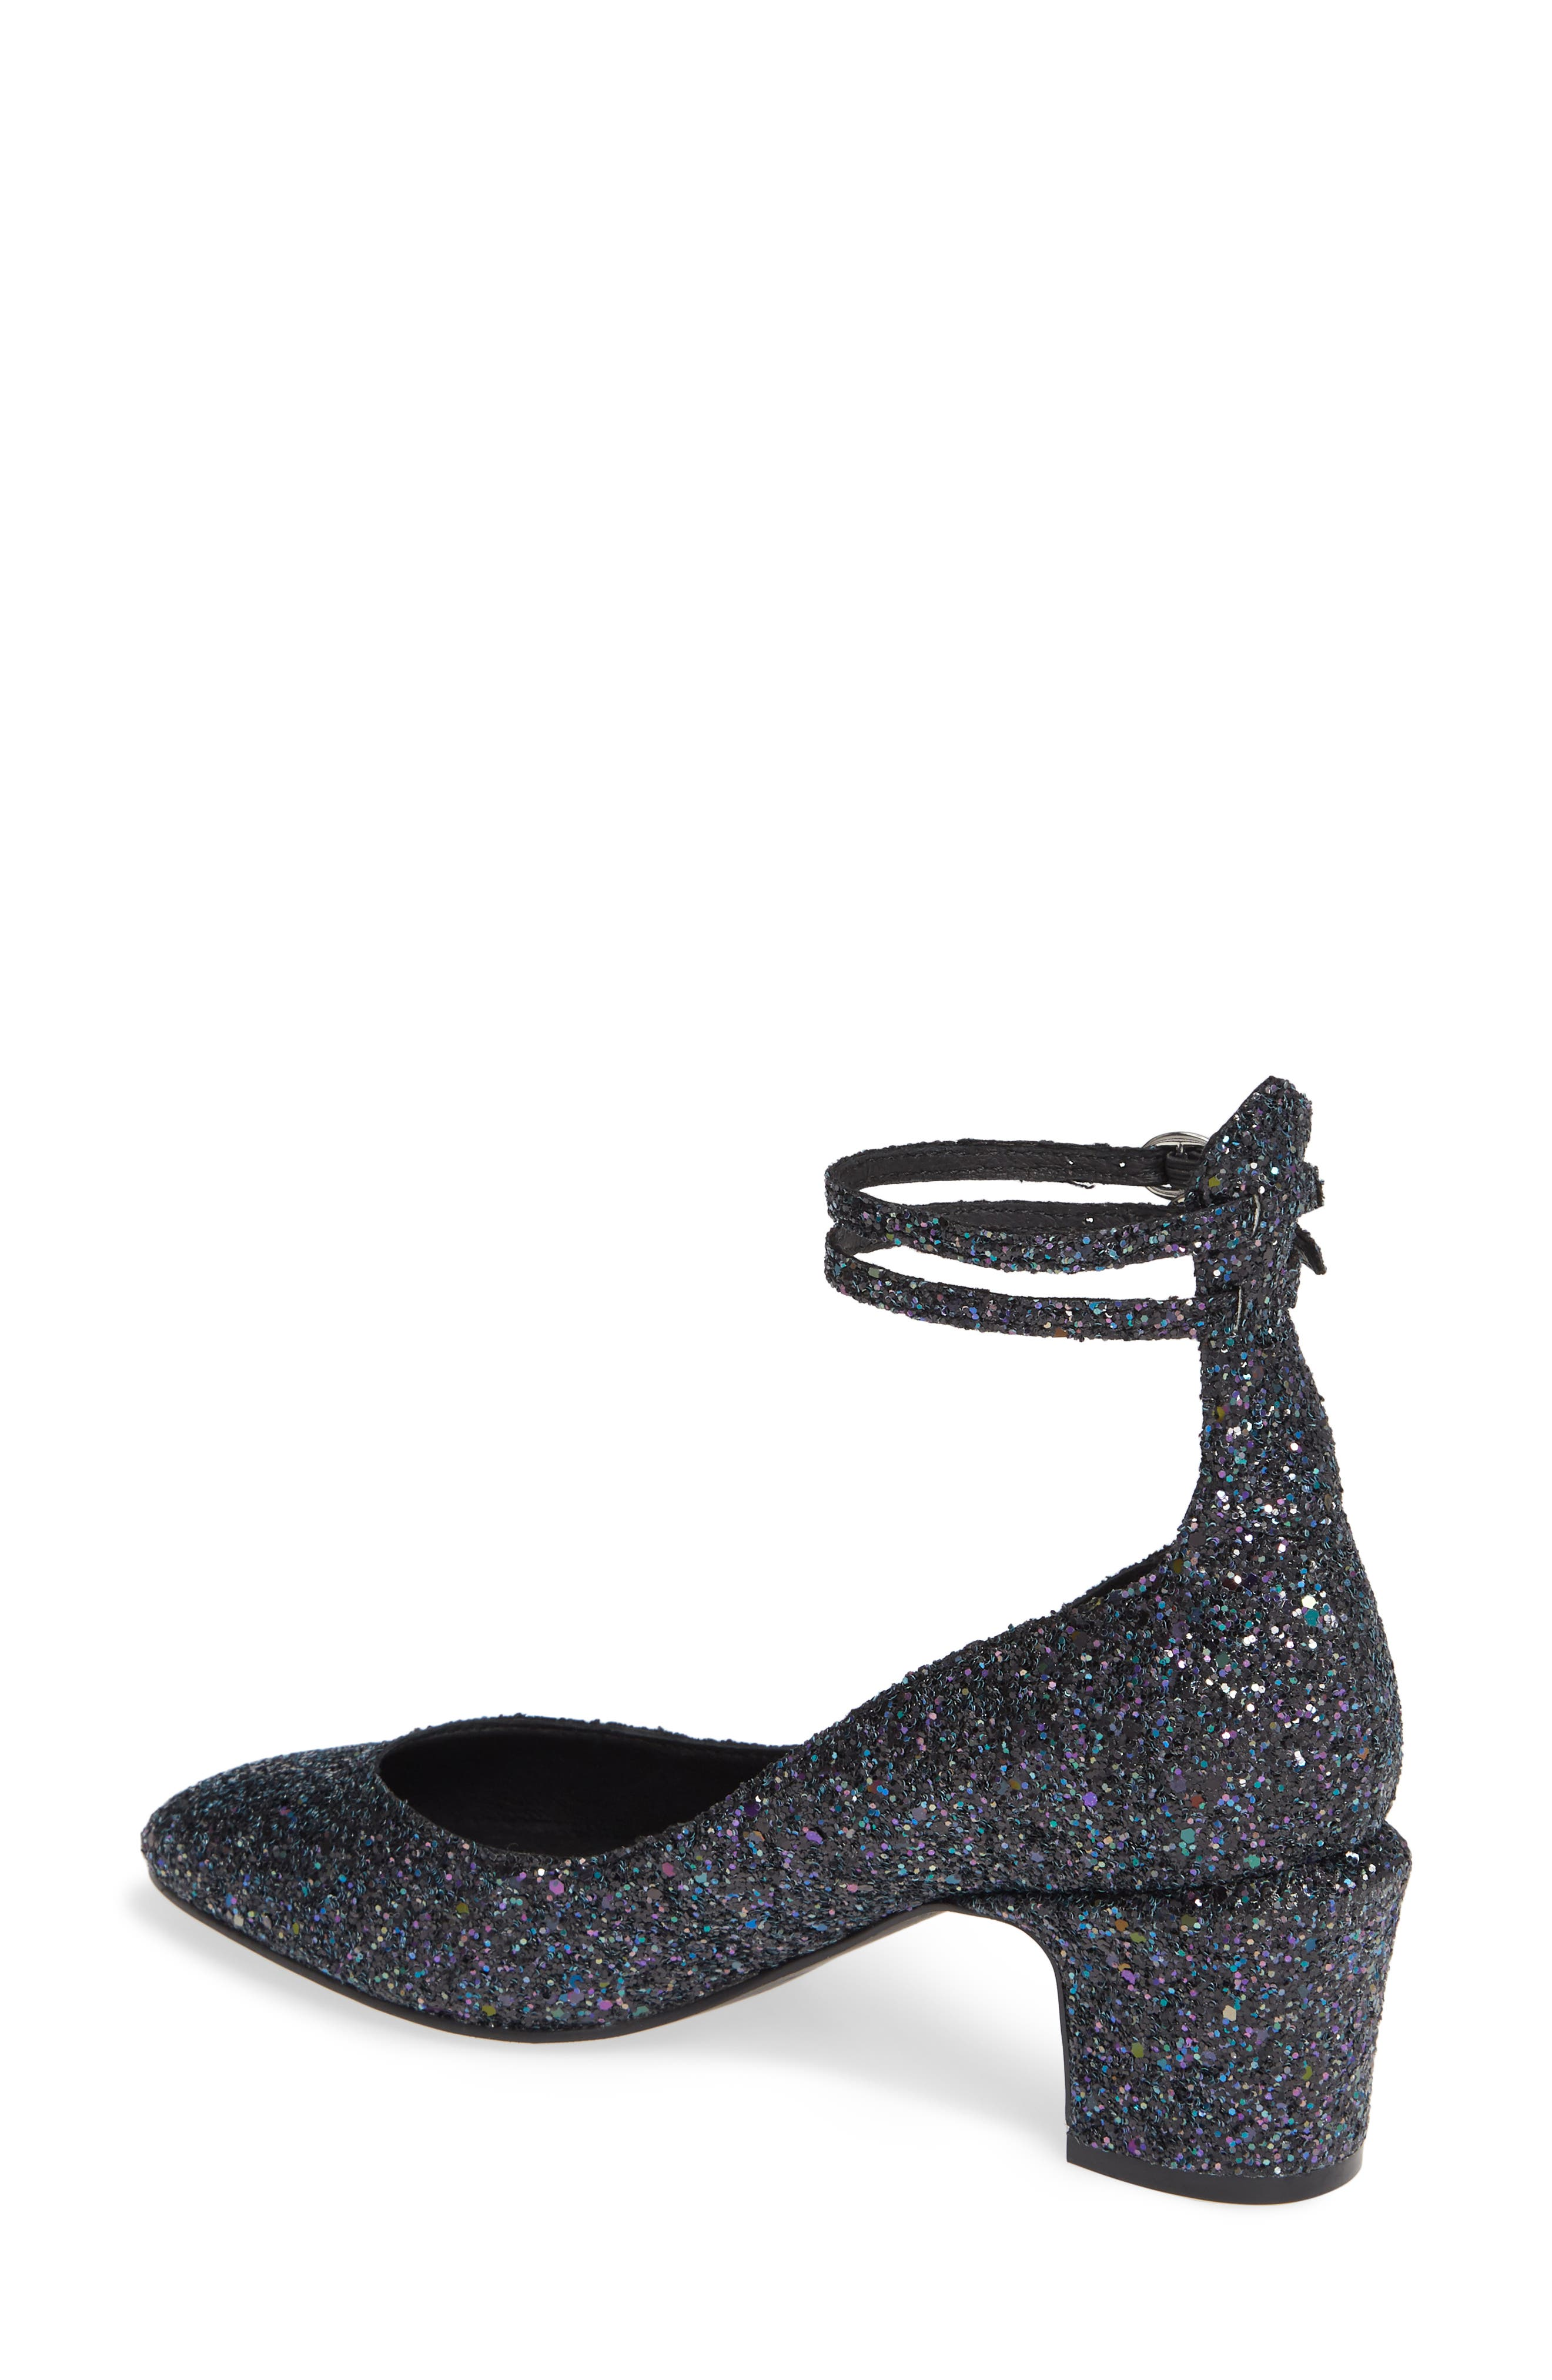 Lana Ankle Strap Pump,                             Alternate thumbnail 2, color,                             NAVY GLITTER PATENT LEATHER